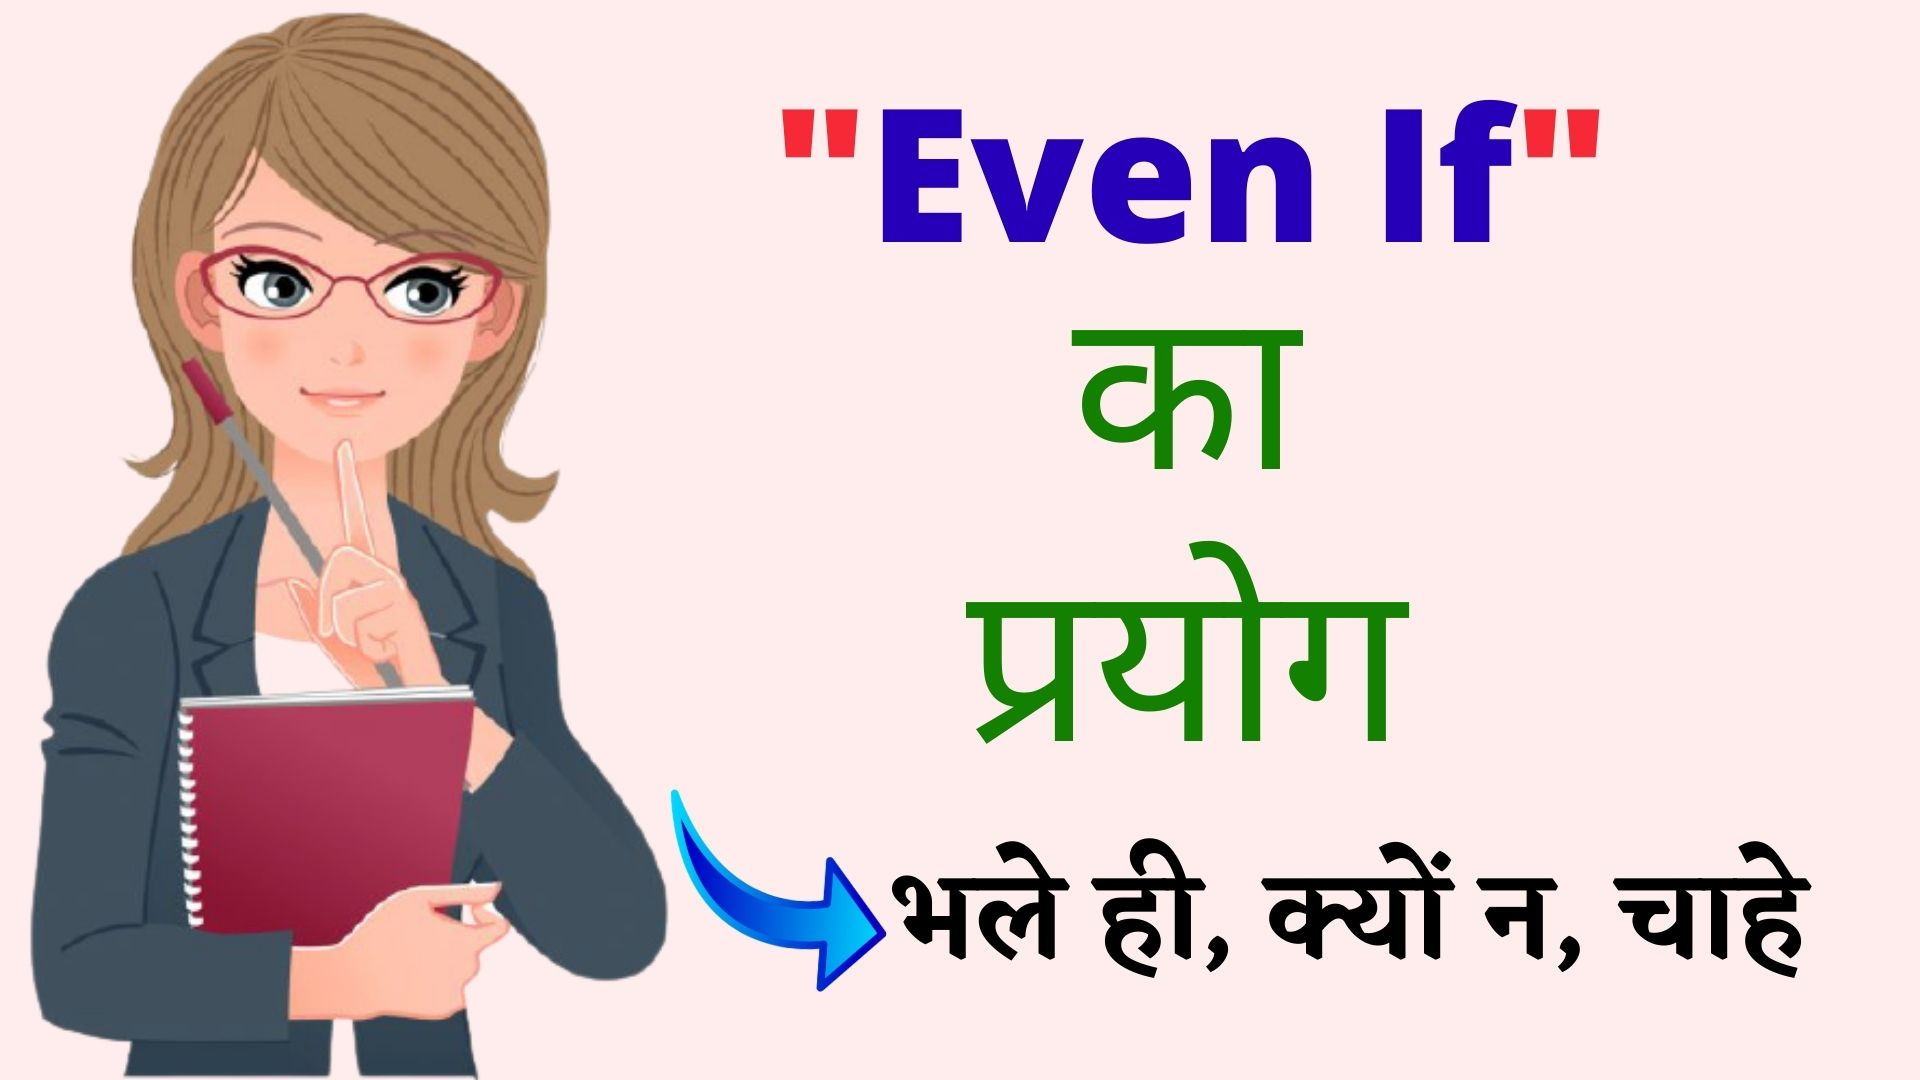 use of even if in hindi